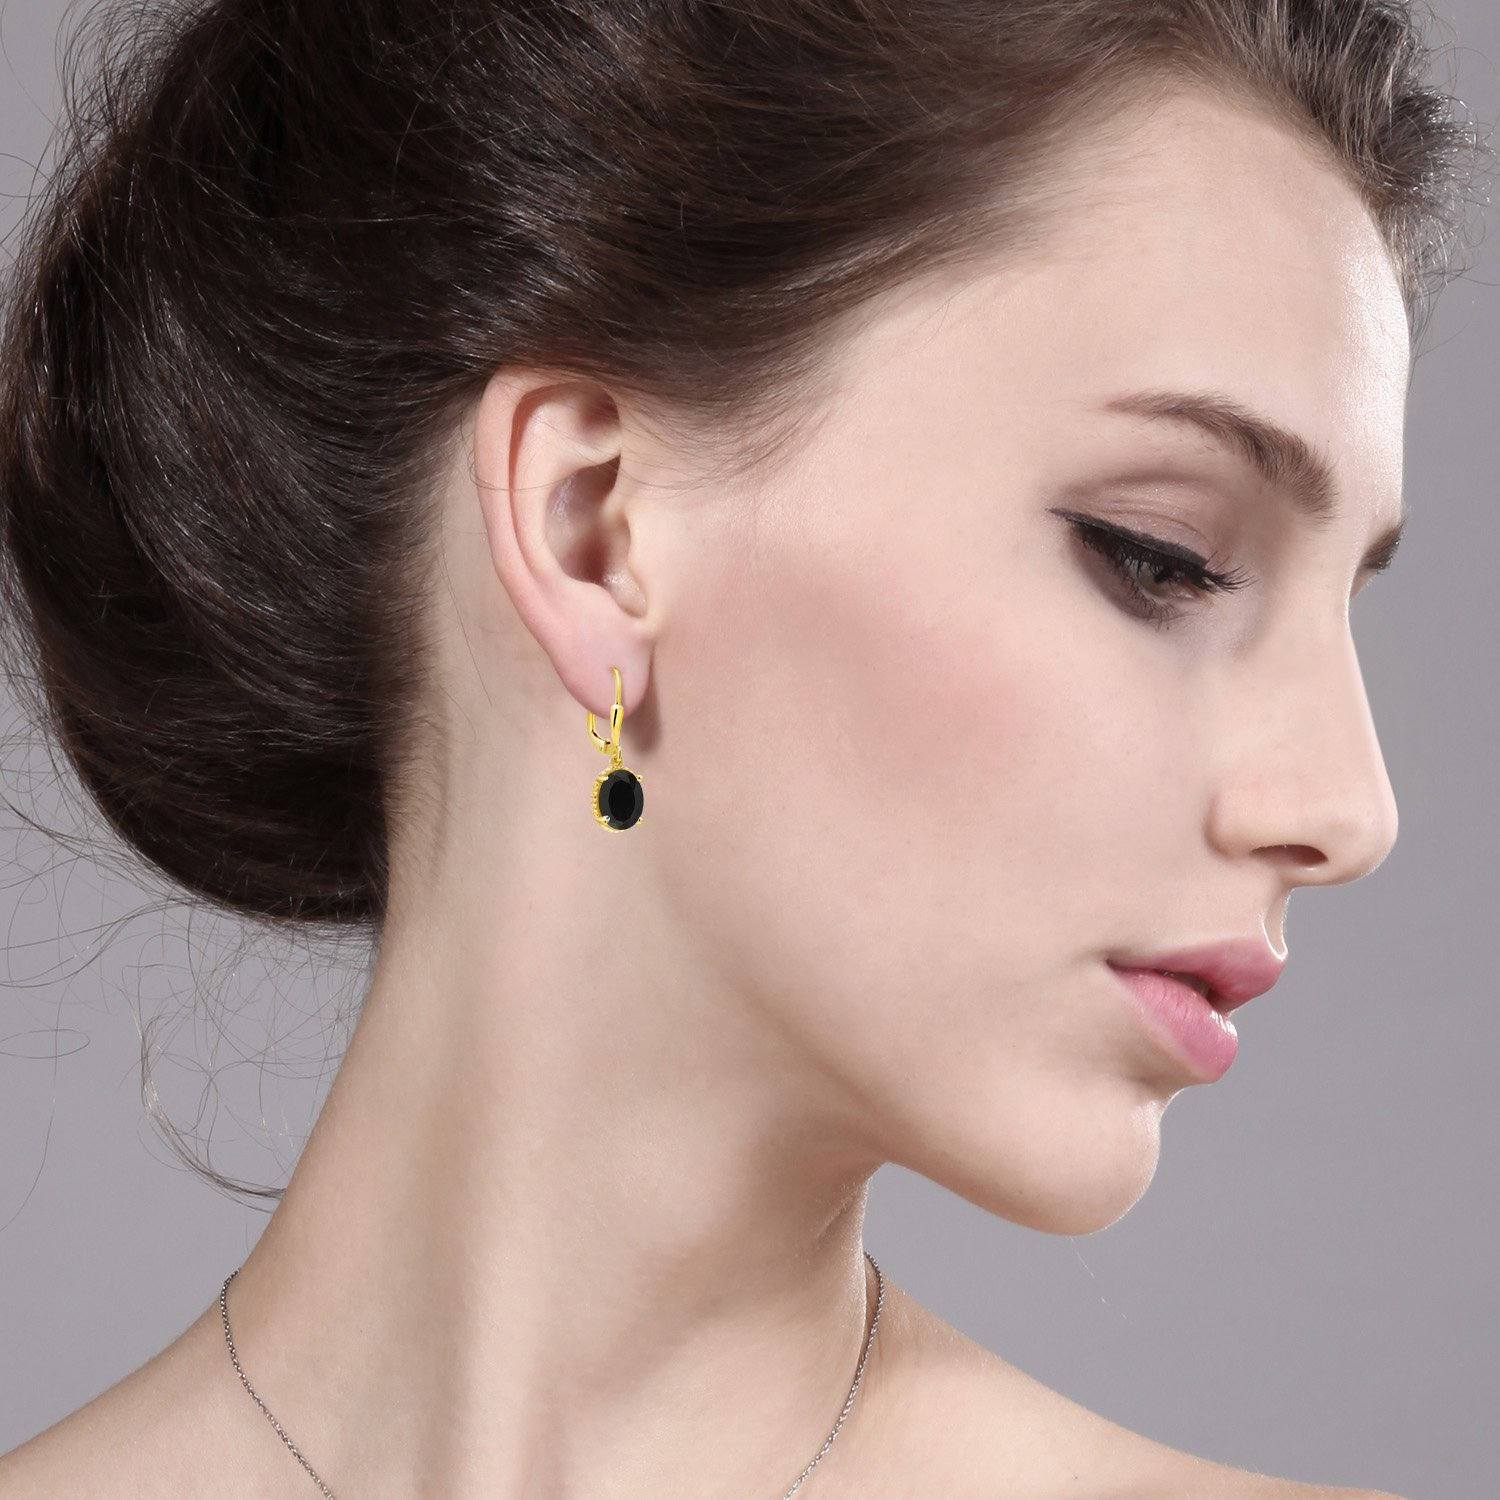 4.00 Ct Oval Black Onyx 18K Yellow Gold Plated Silver 27mm Length Dangle Earrings by Gem Stone King (Image #2)